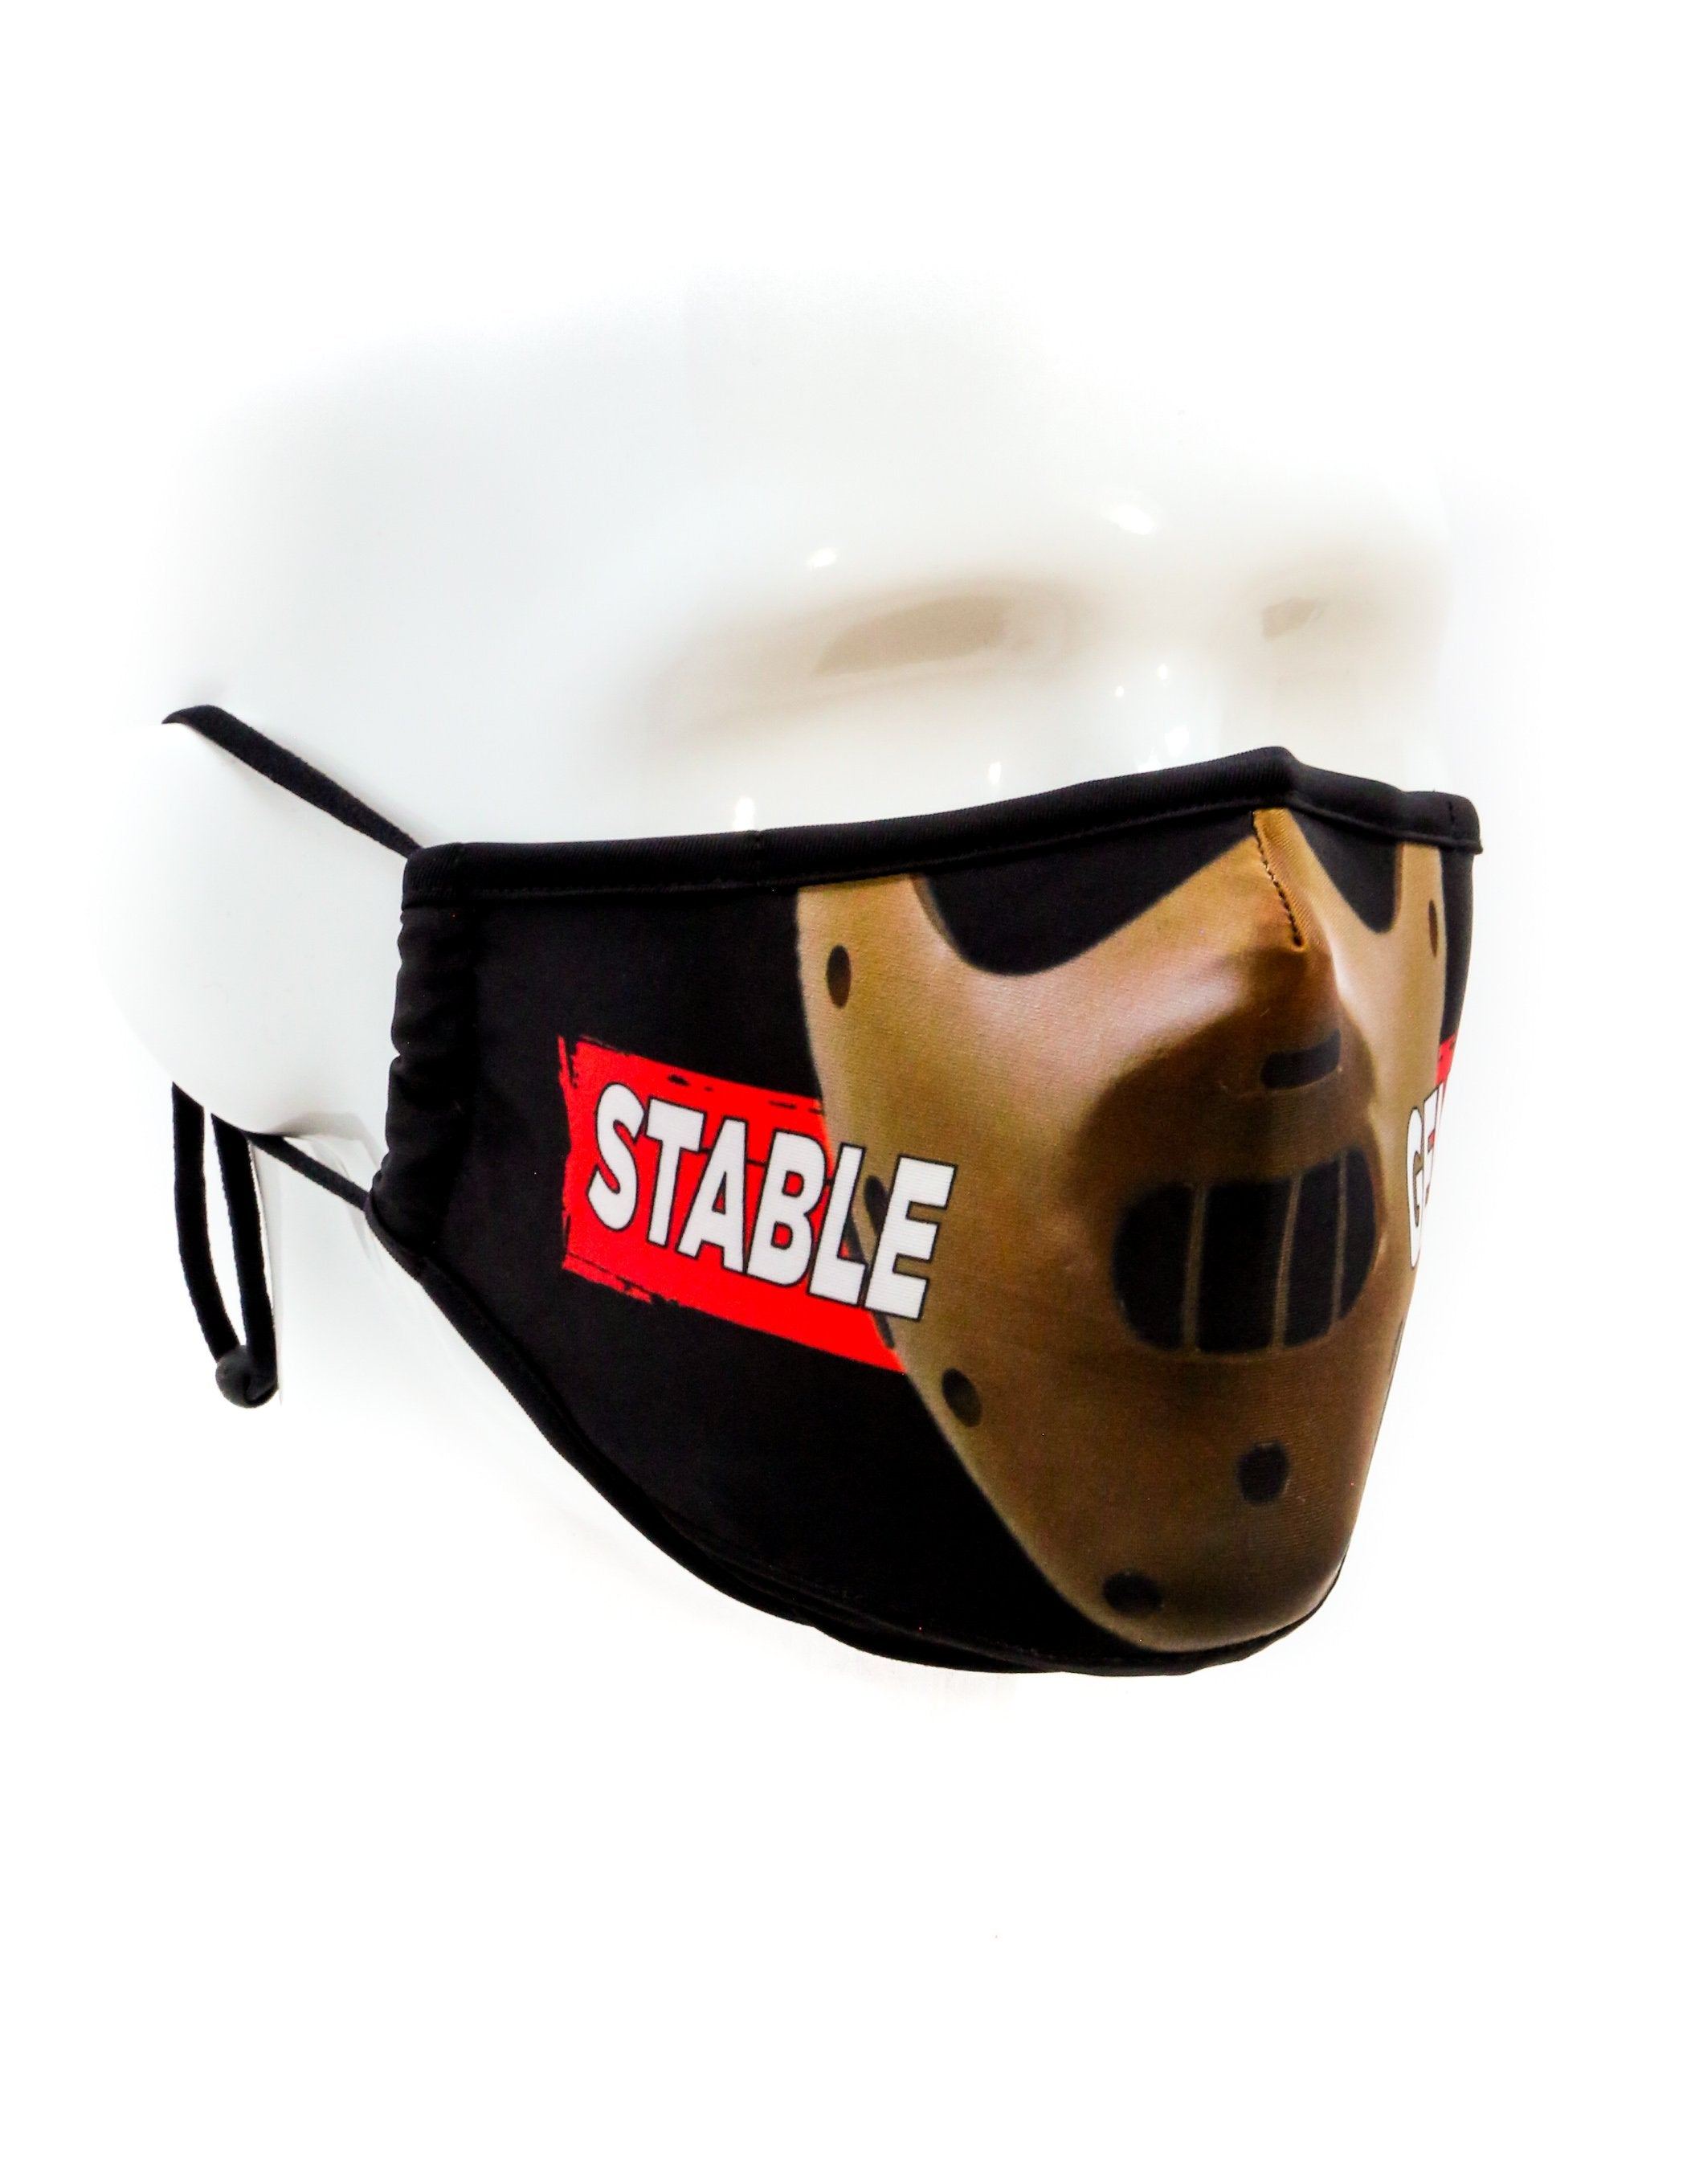 18036: FYDELITY- Premium Protective Fabric Face Covering Mask: Stable Genius